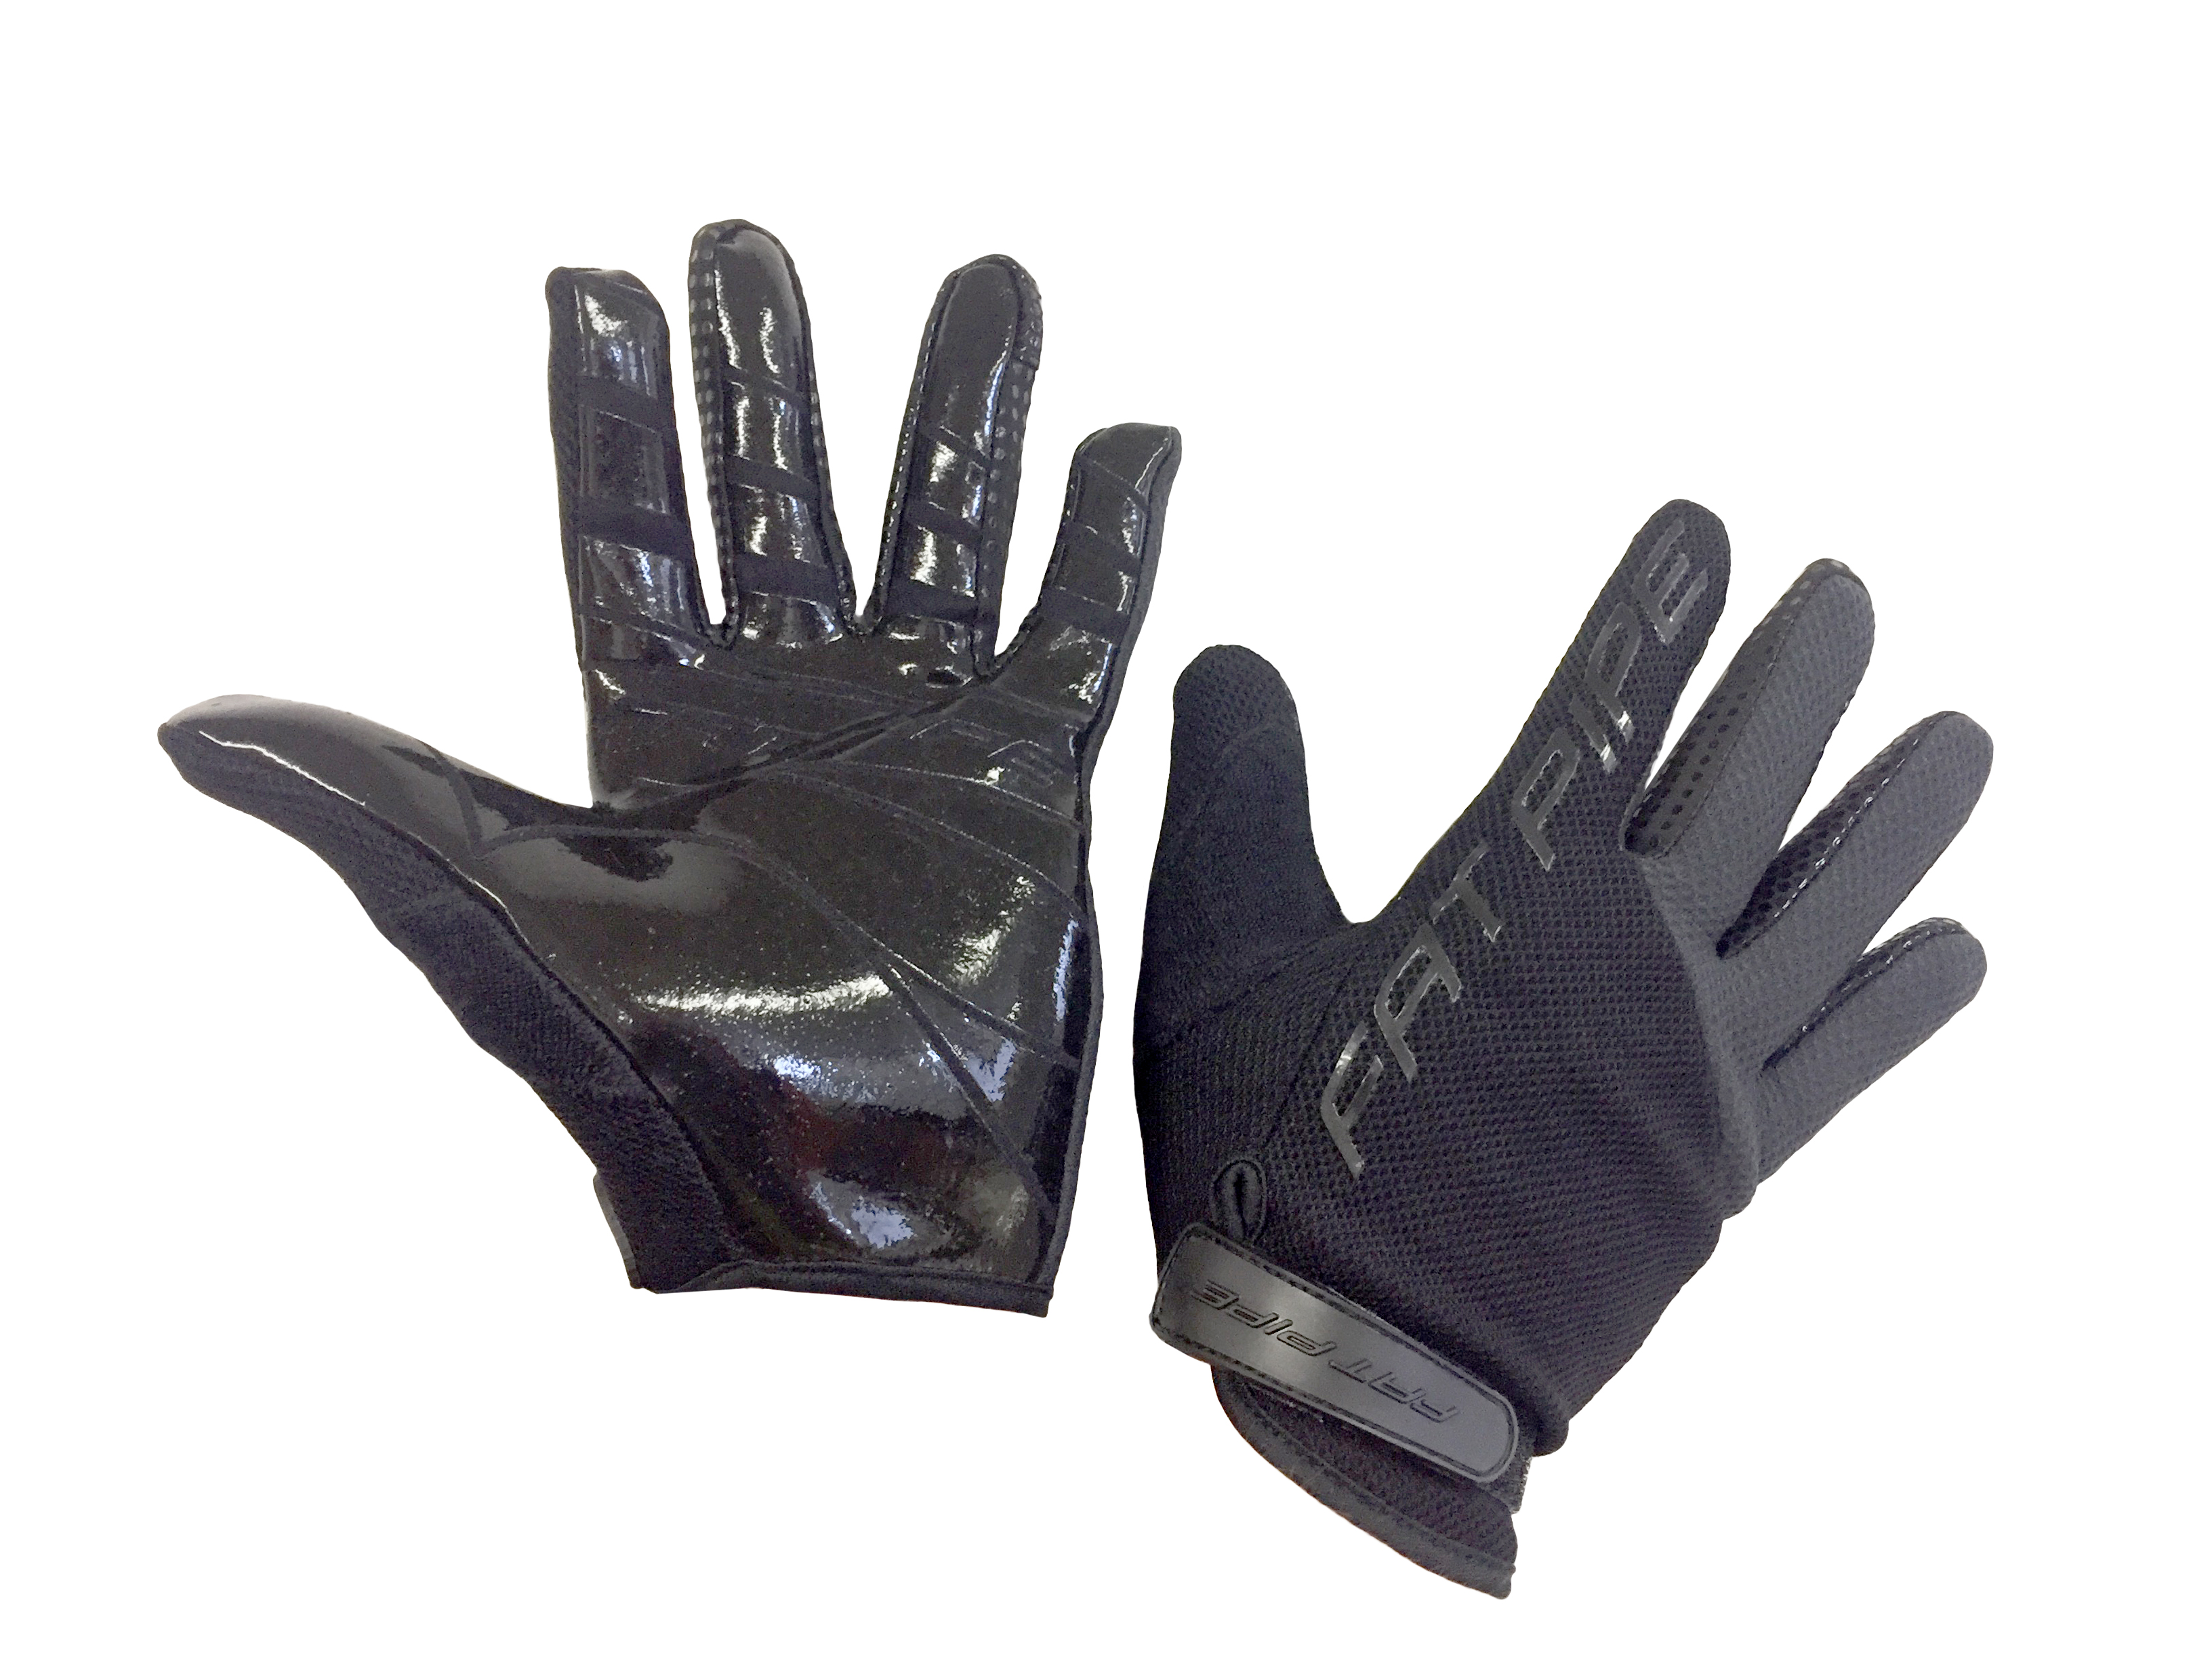 Fatpipe GK-Gloves with silicone